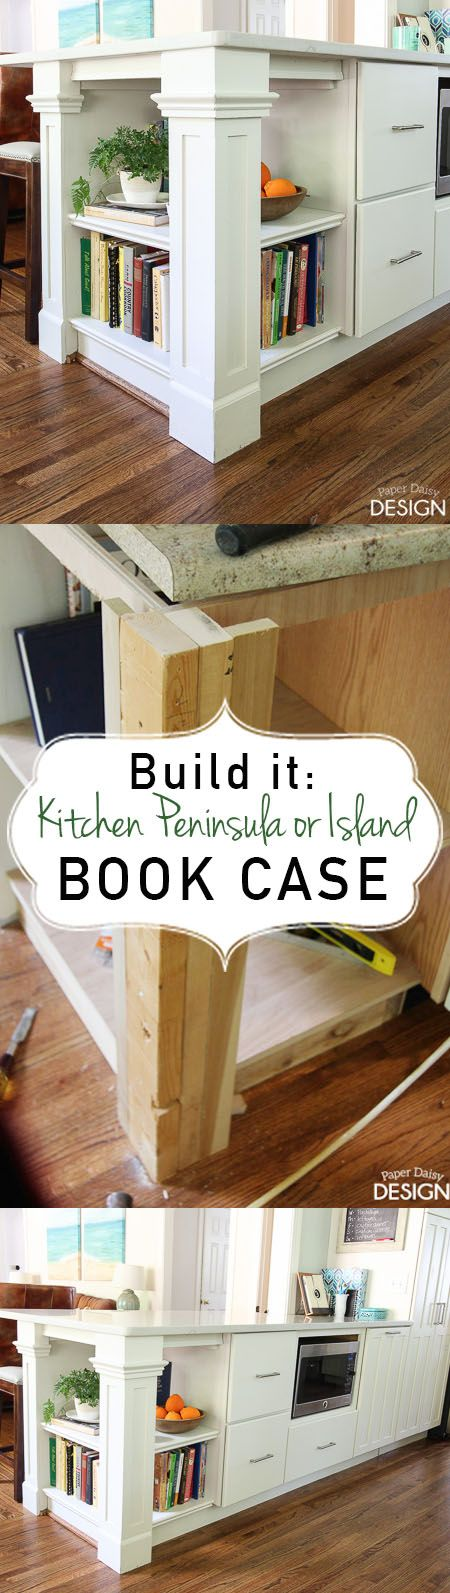 Build a Kitchen Peninsula or Island bookcase to store cookbooks and display your favorite dishes.